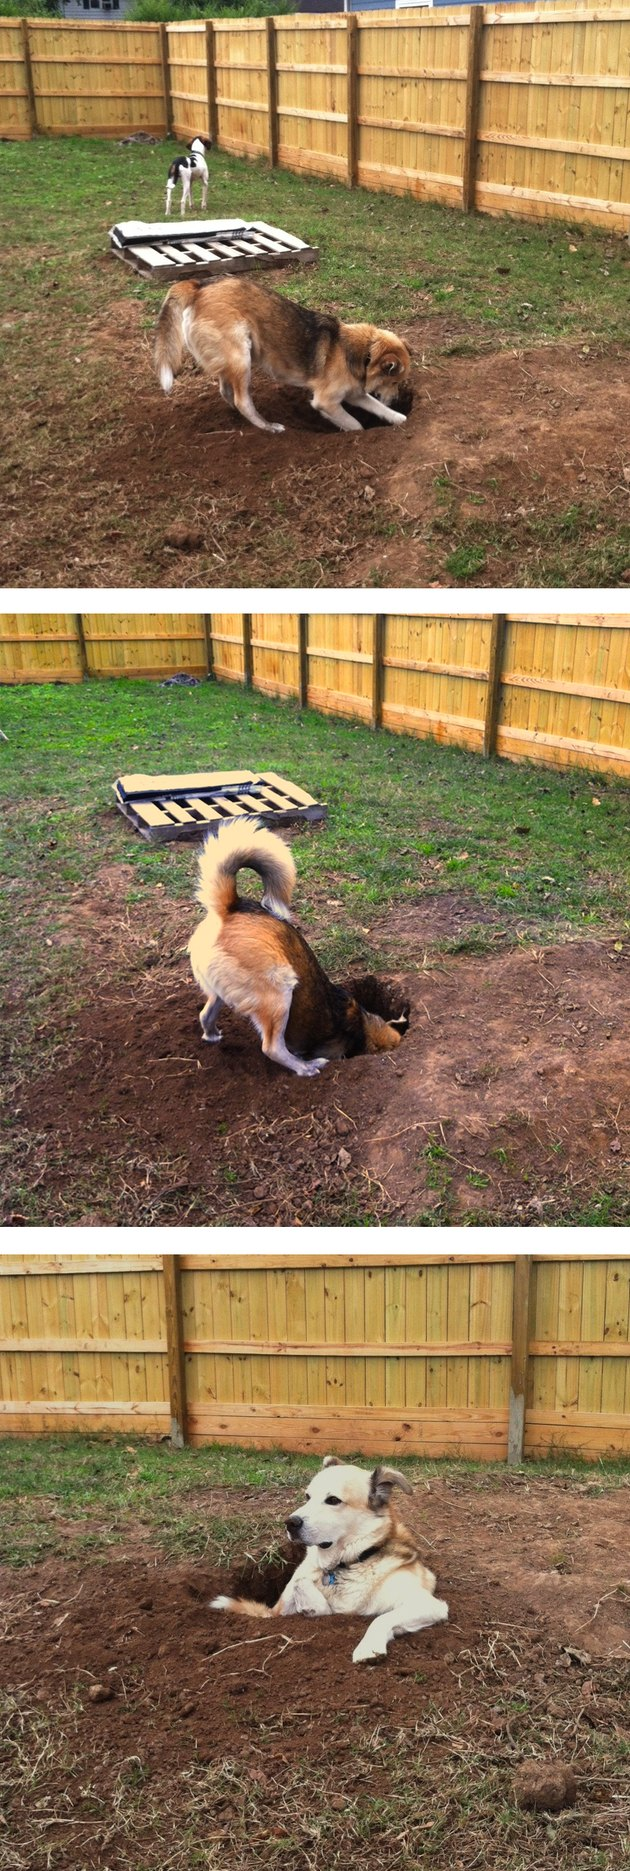 Photo set of dog digging hole